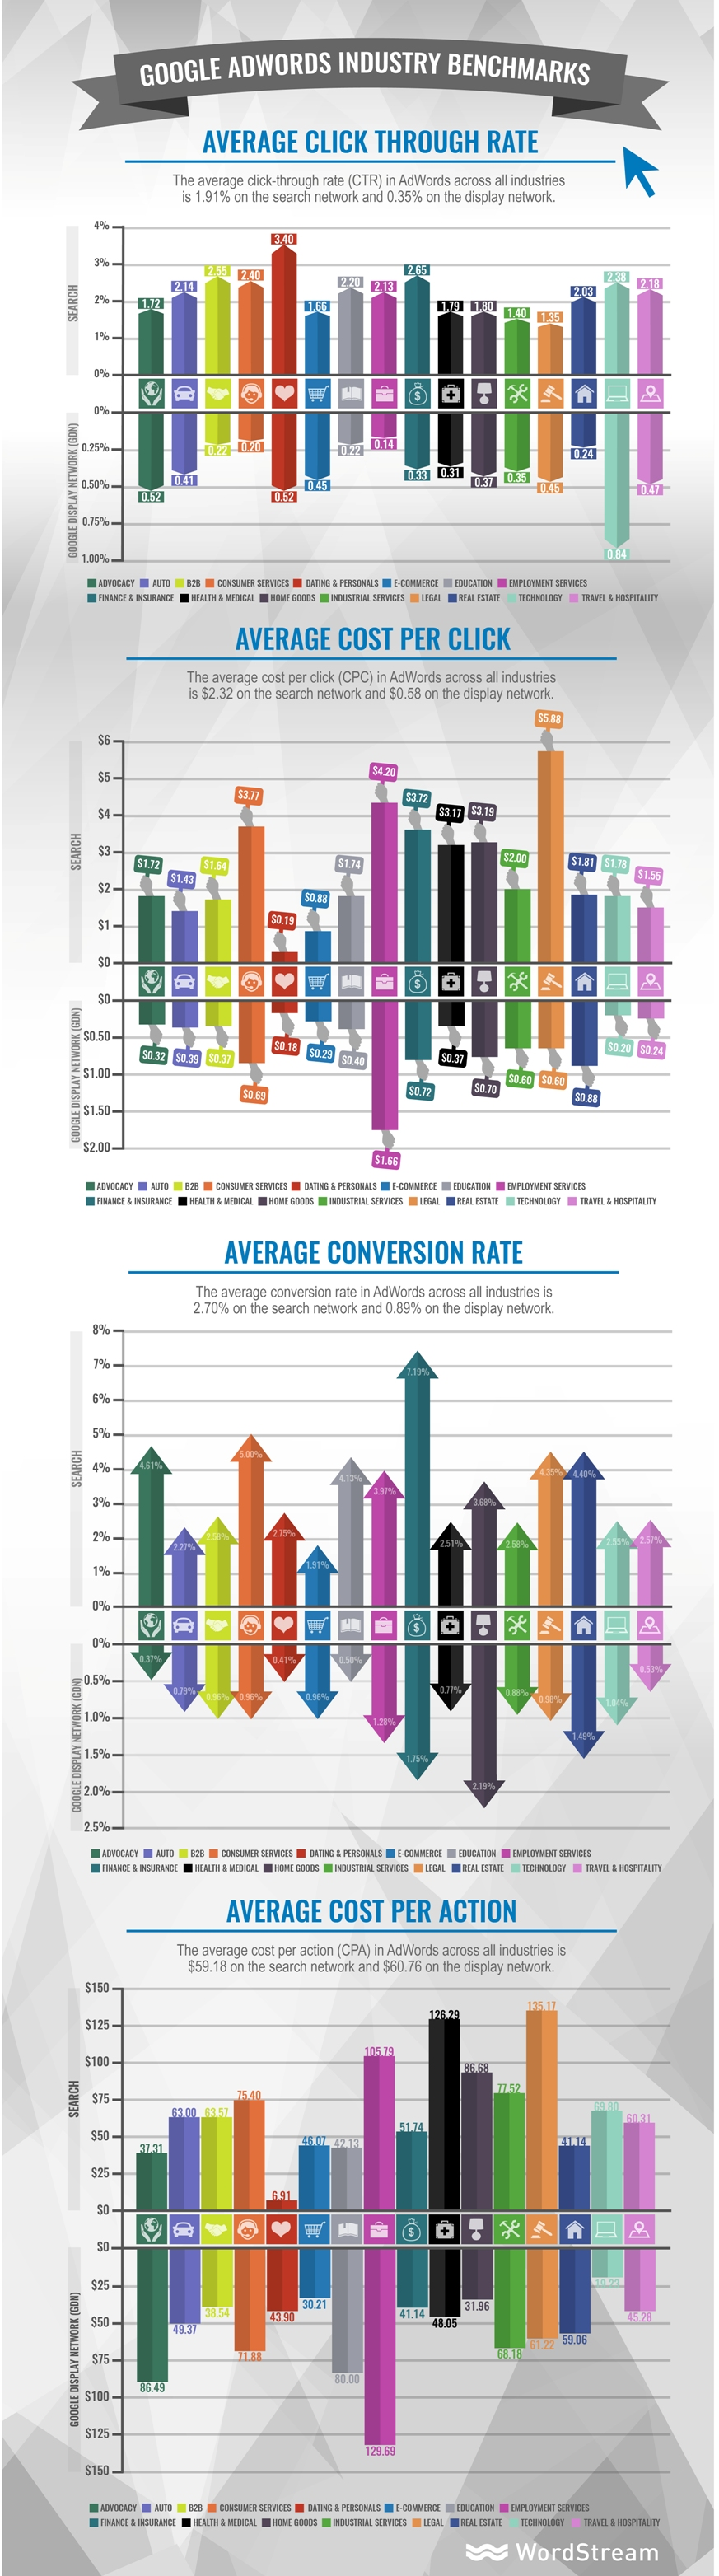 ismbc google-adwords-industry-benchmarks-infographic wordsteam-com